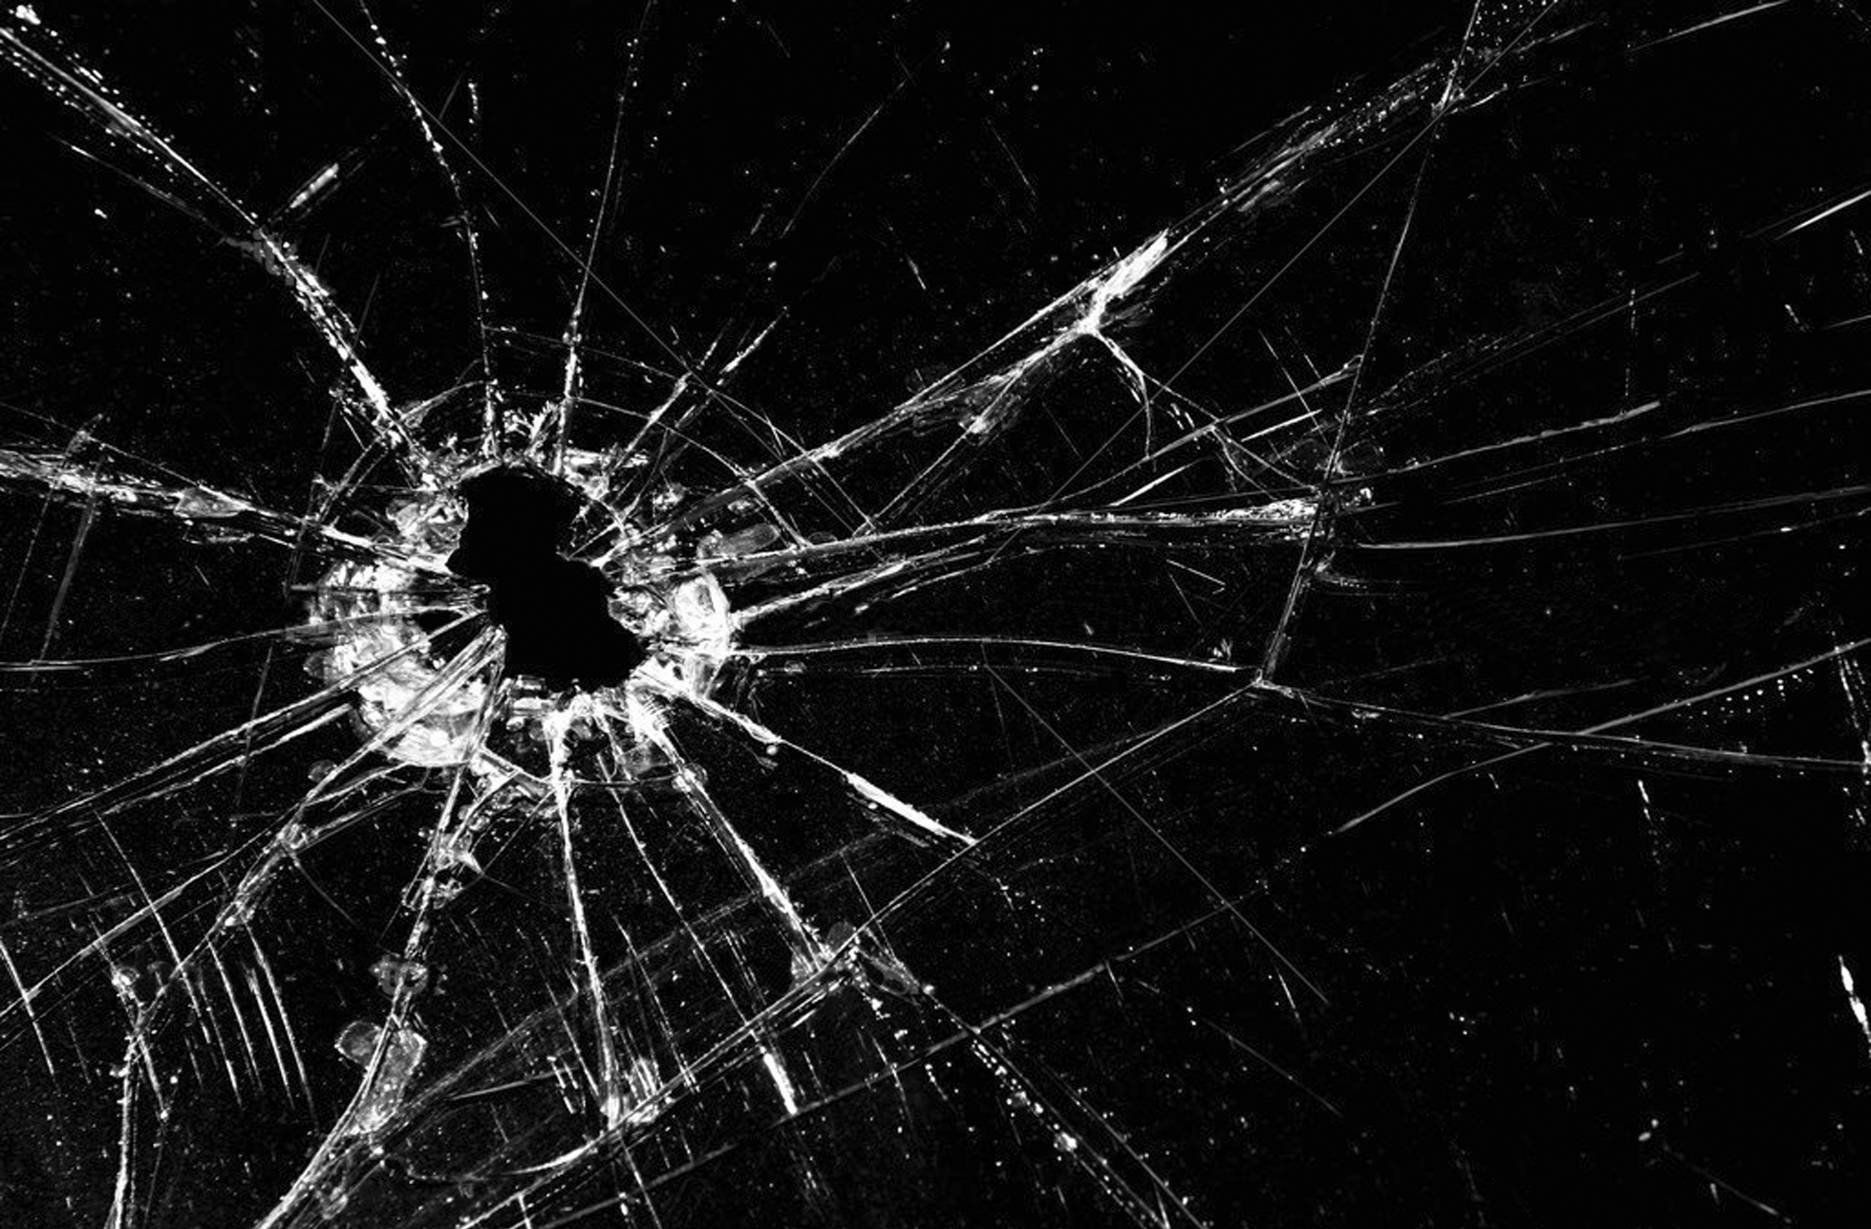 Broken Glass Wallpaper Hd Abstract Wallpapers